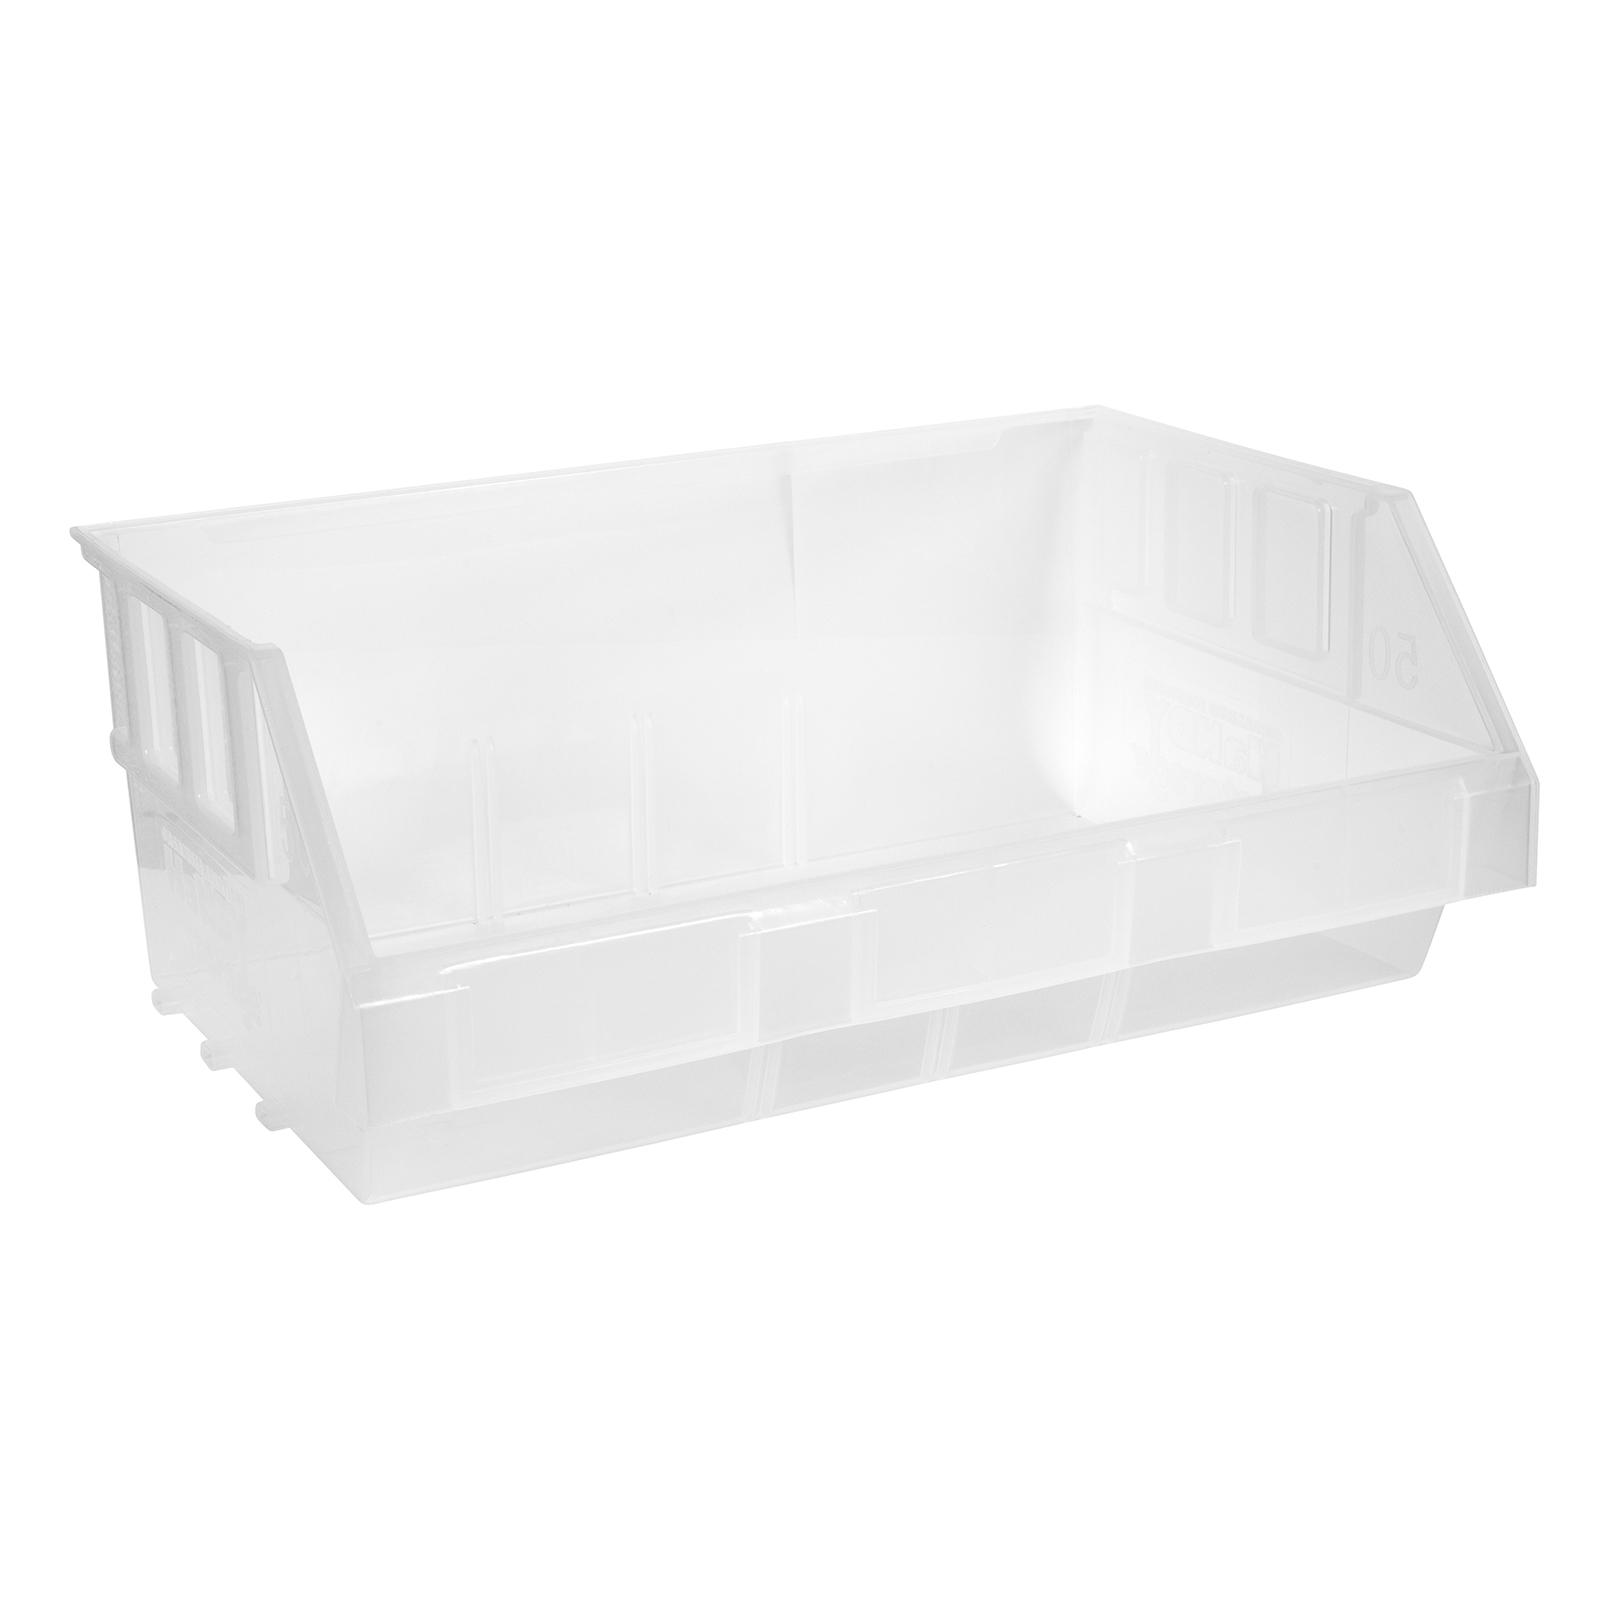 Handy Storage Size 50 Clear Plastic Tote